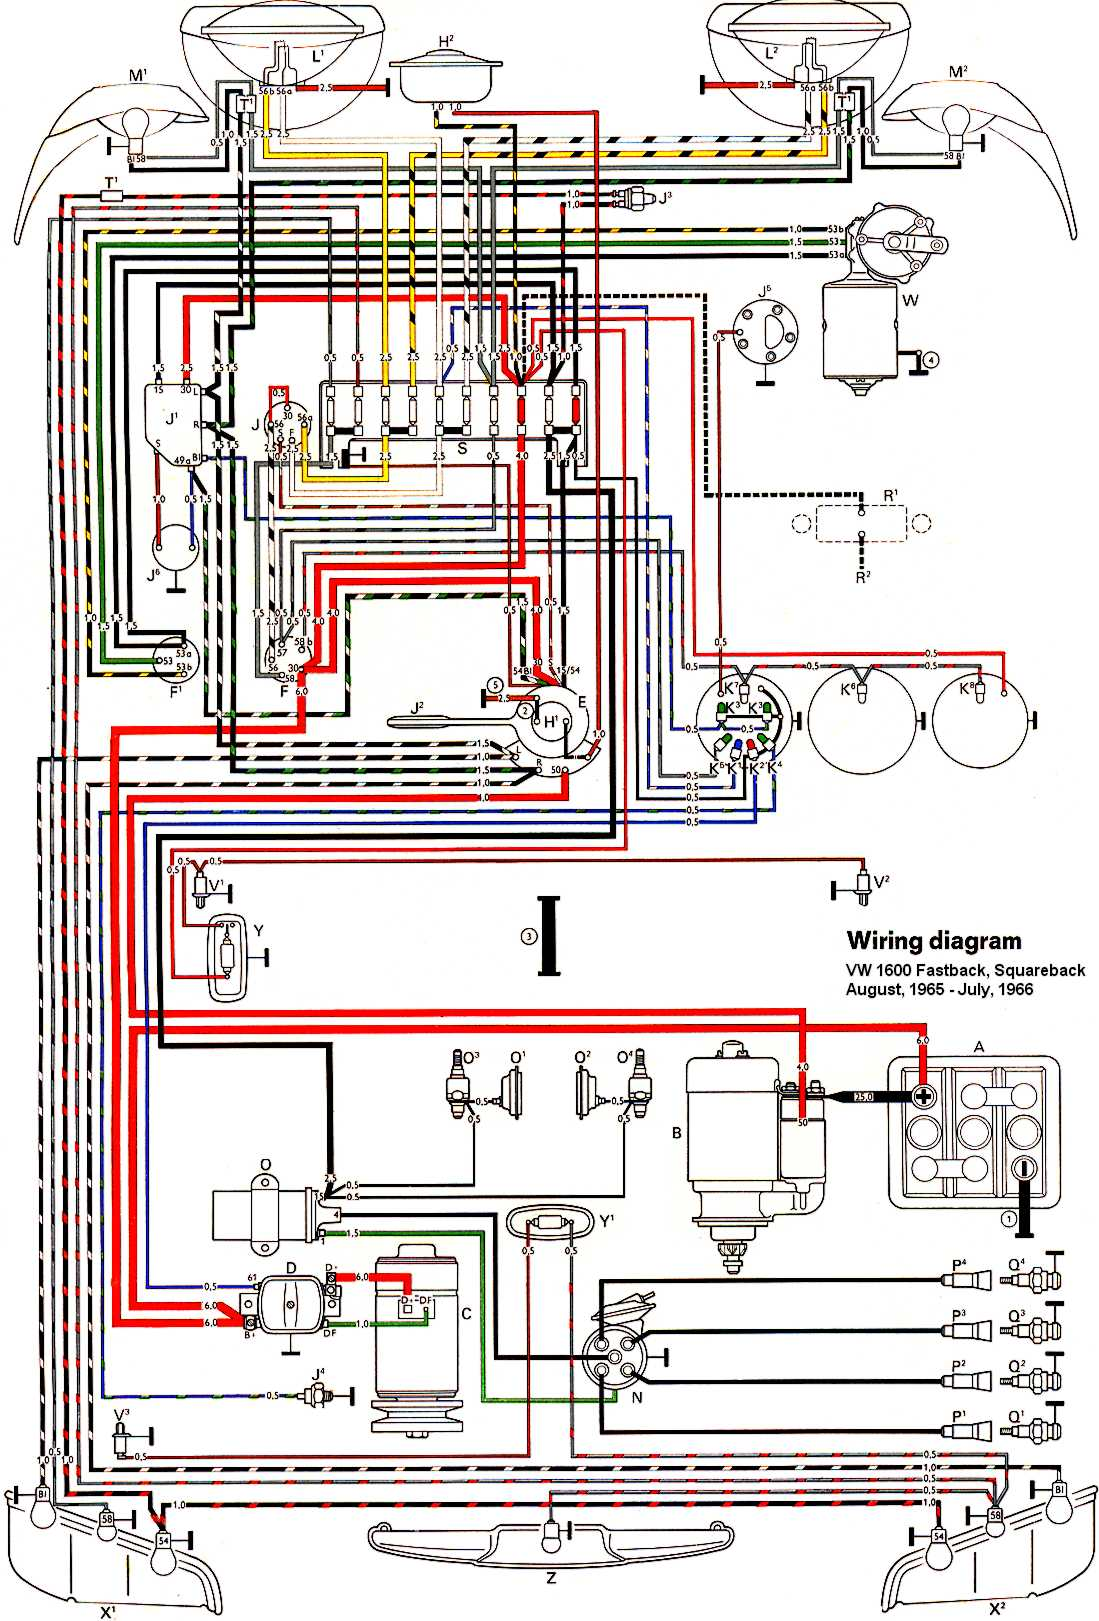 type3_1600_66 vw thing wiring diagram 1974 beetle heater diagram \u2022 wiring 1971 vw bus wiring diagram at mr168.co